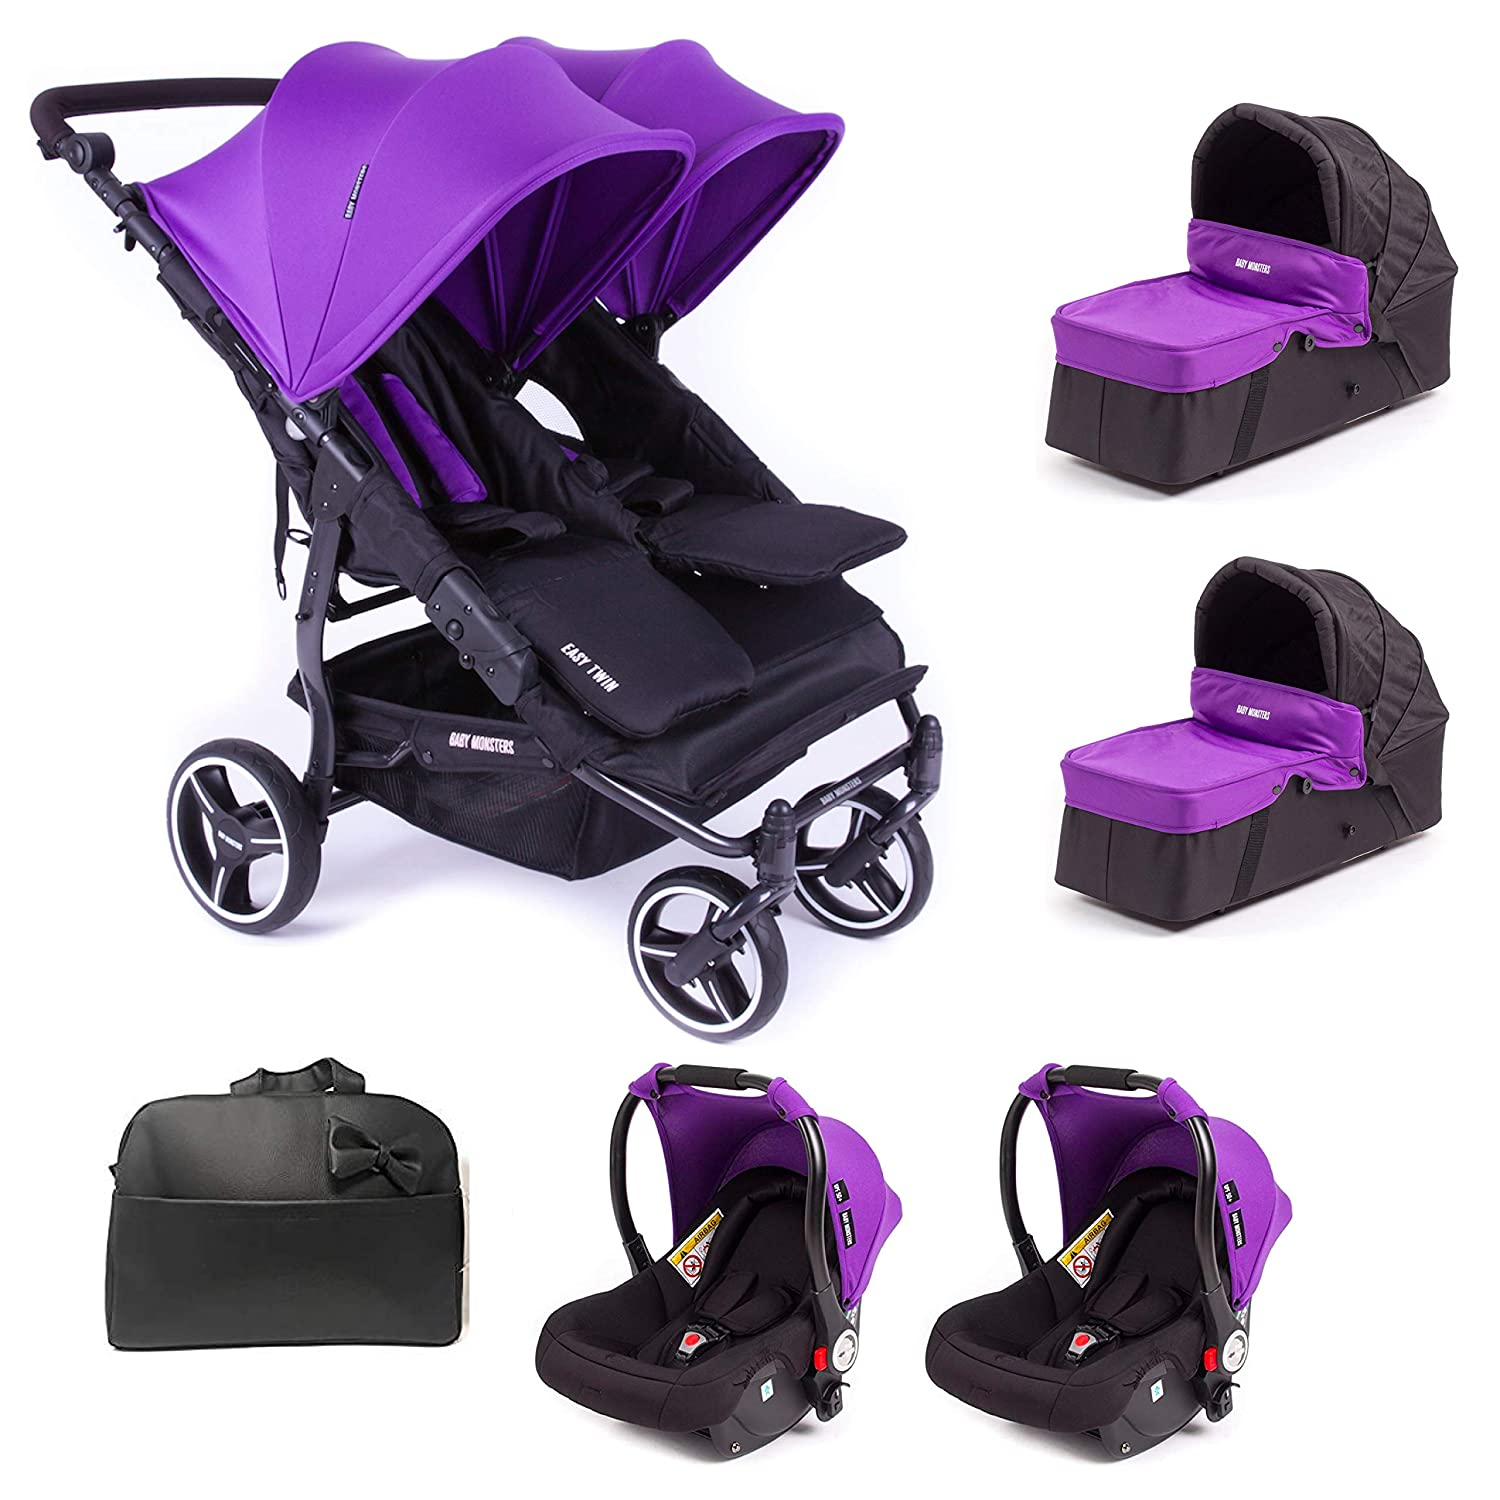 Baby Monsters Silla Gemelar Easy twin 3.0.S + 2 Capazos + 2 Grupo 0+ Regalo 2 adaptadores + Regalo Bolso - Danielstore (Purple): Amazon.es: Bebé